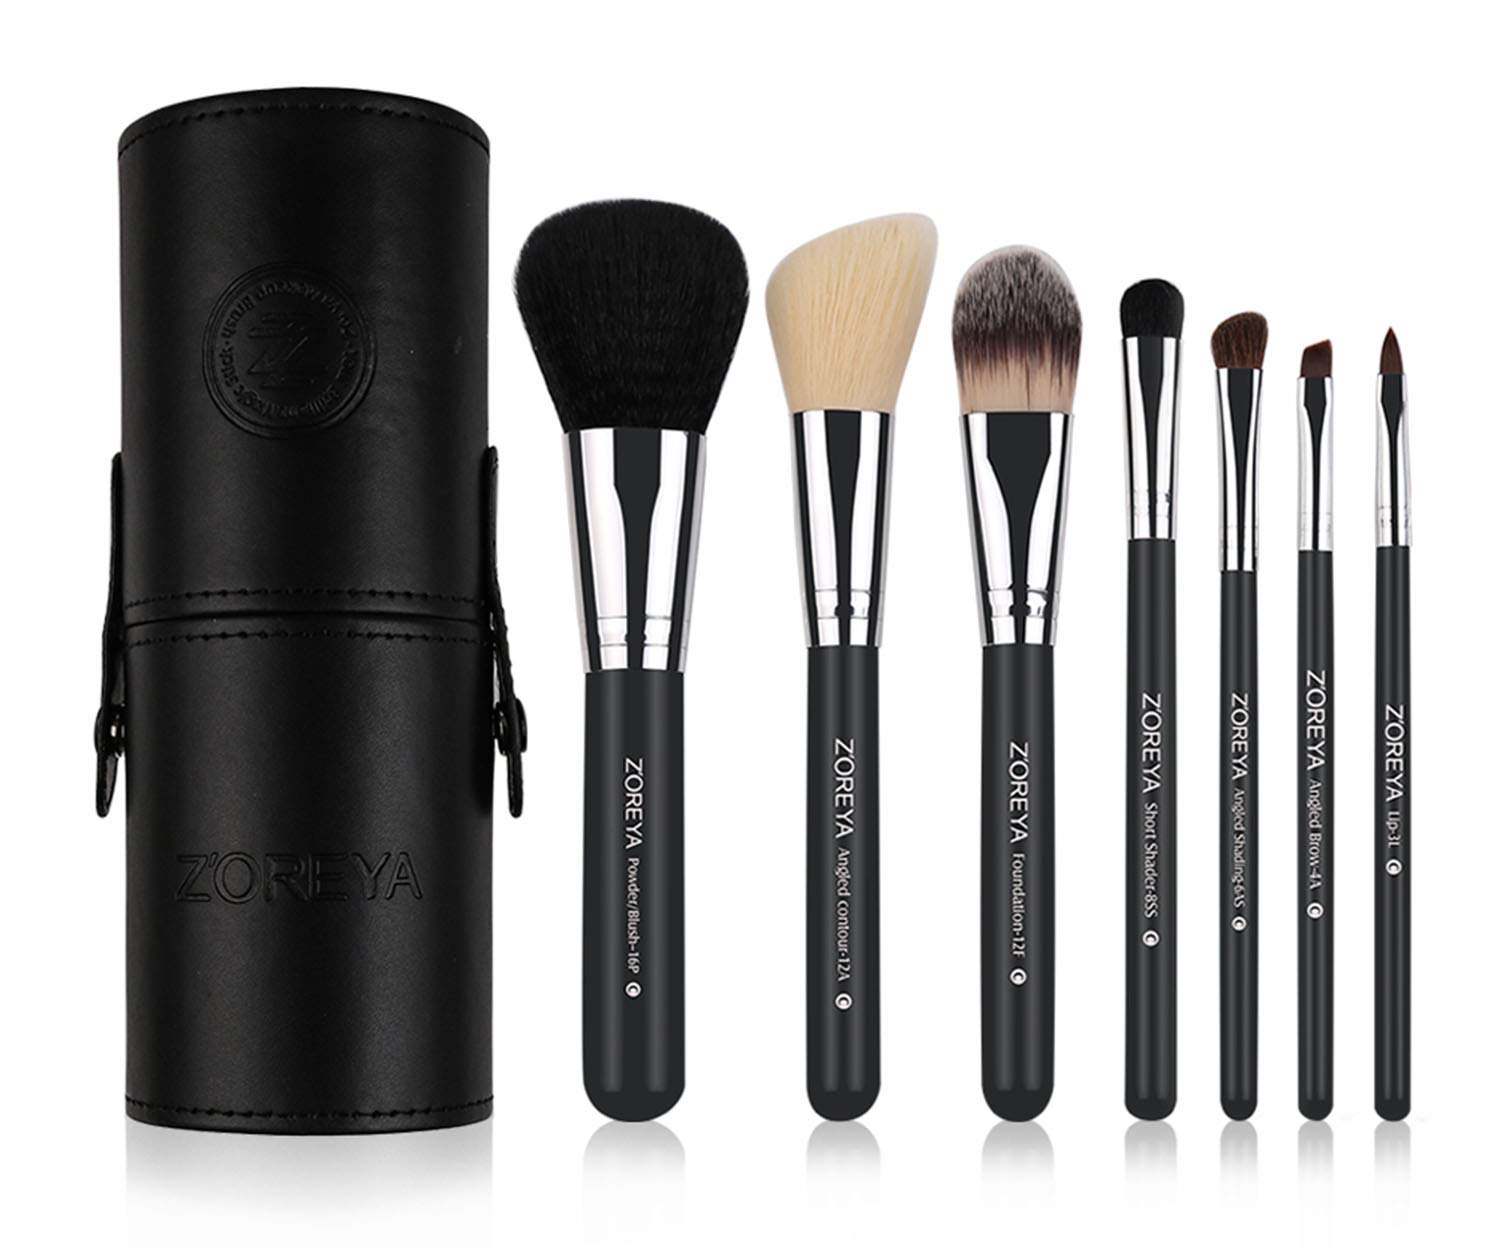 Makeup Brush Set Black Cone- 7 Zoreya Professional Makeup Brushes With Premium Synthetic Fiber And Free Luxury Case Kit